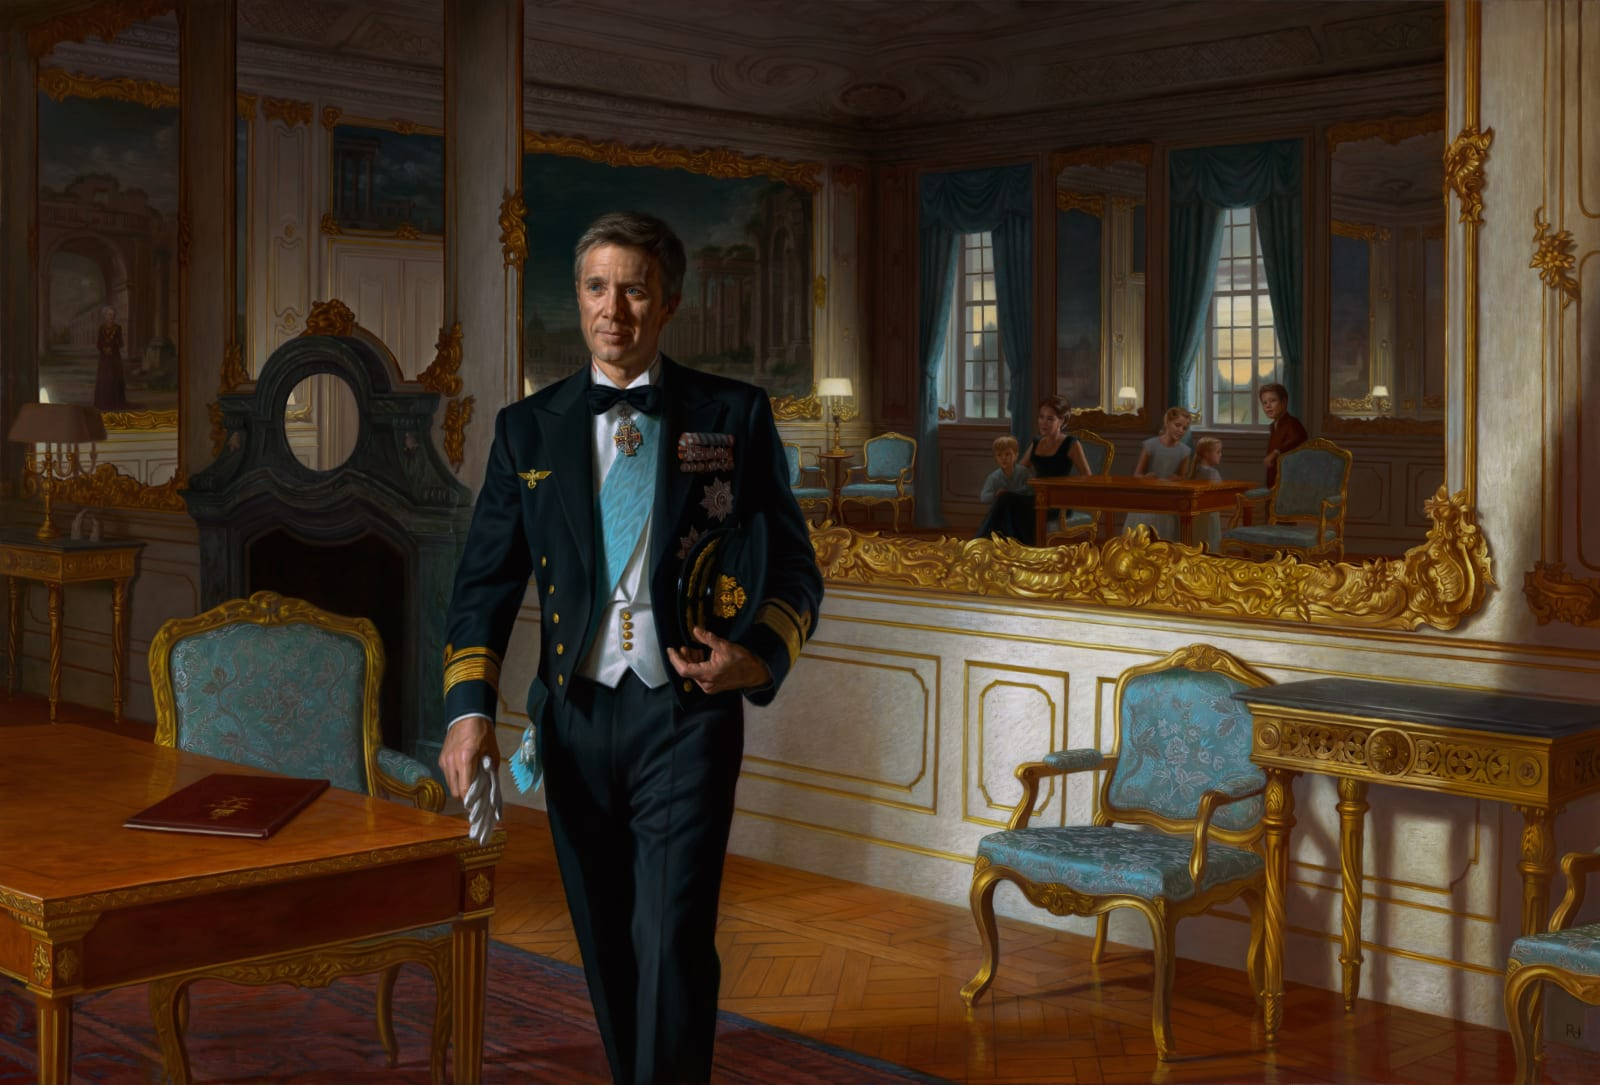 HRH Crown Prince Frederik of Denmark 2018 Oil on canvas 170 x 250 cm The Museum of National History